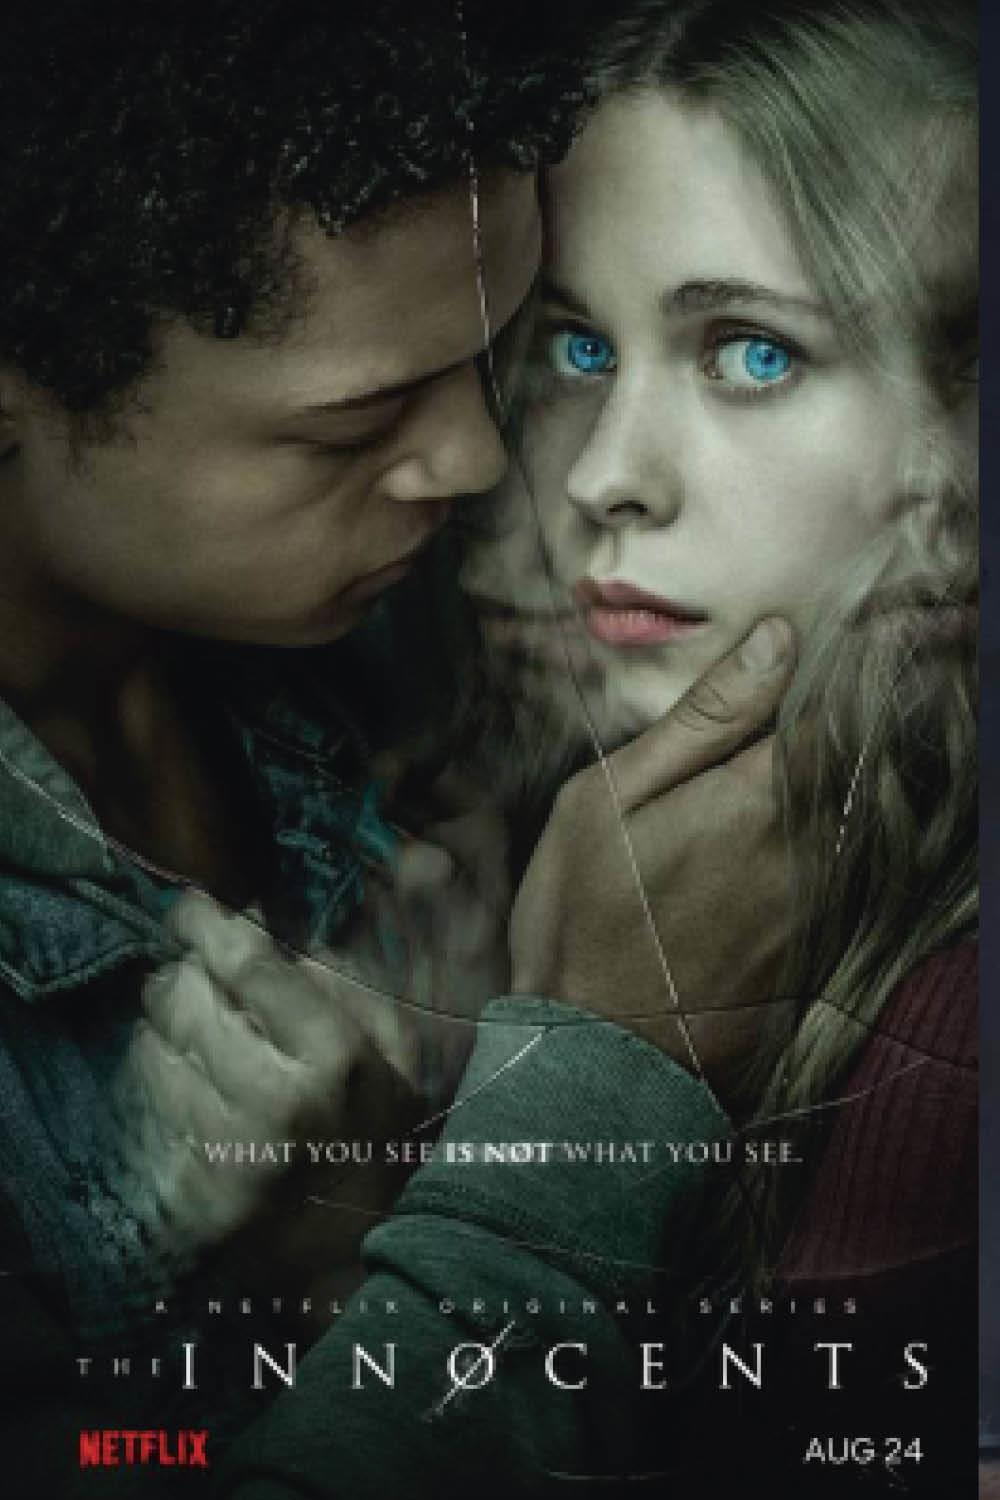 the innocents series netflix hbo movistar plus atresmedia. The Innocents: Temporada 1